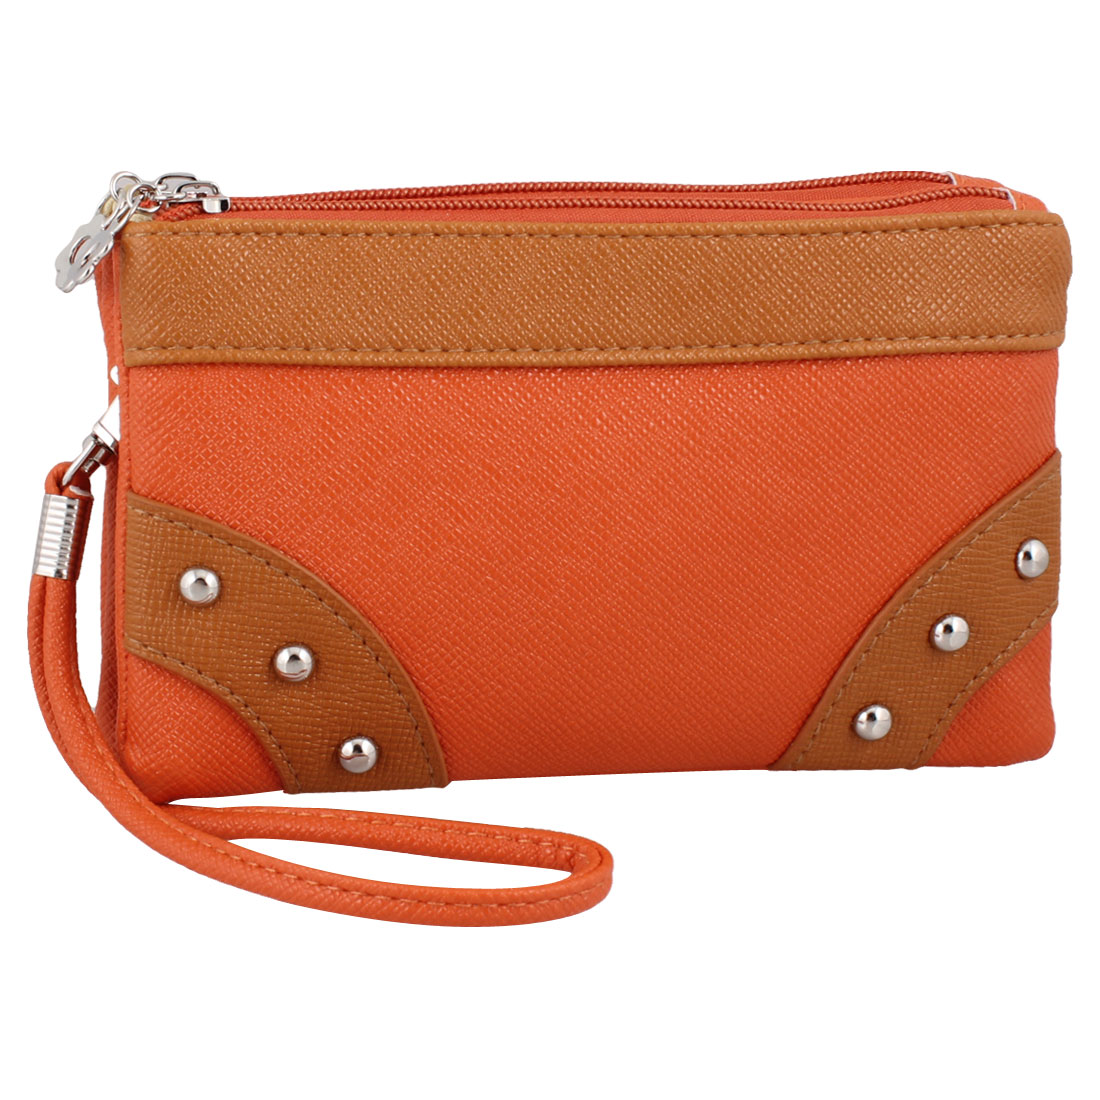 Woman Zipper Closure Orange Faux Leather 2 Slots Wallet Purse w Shoulder Strap